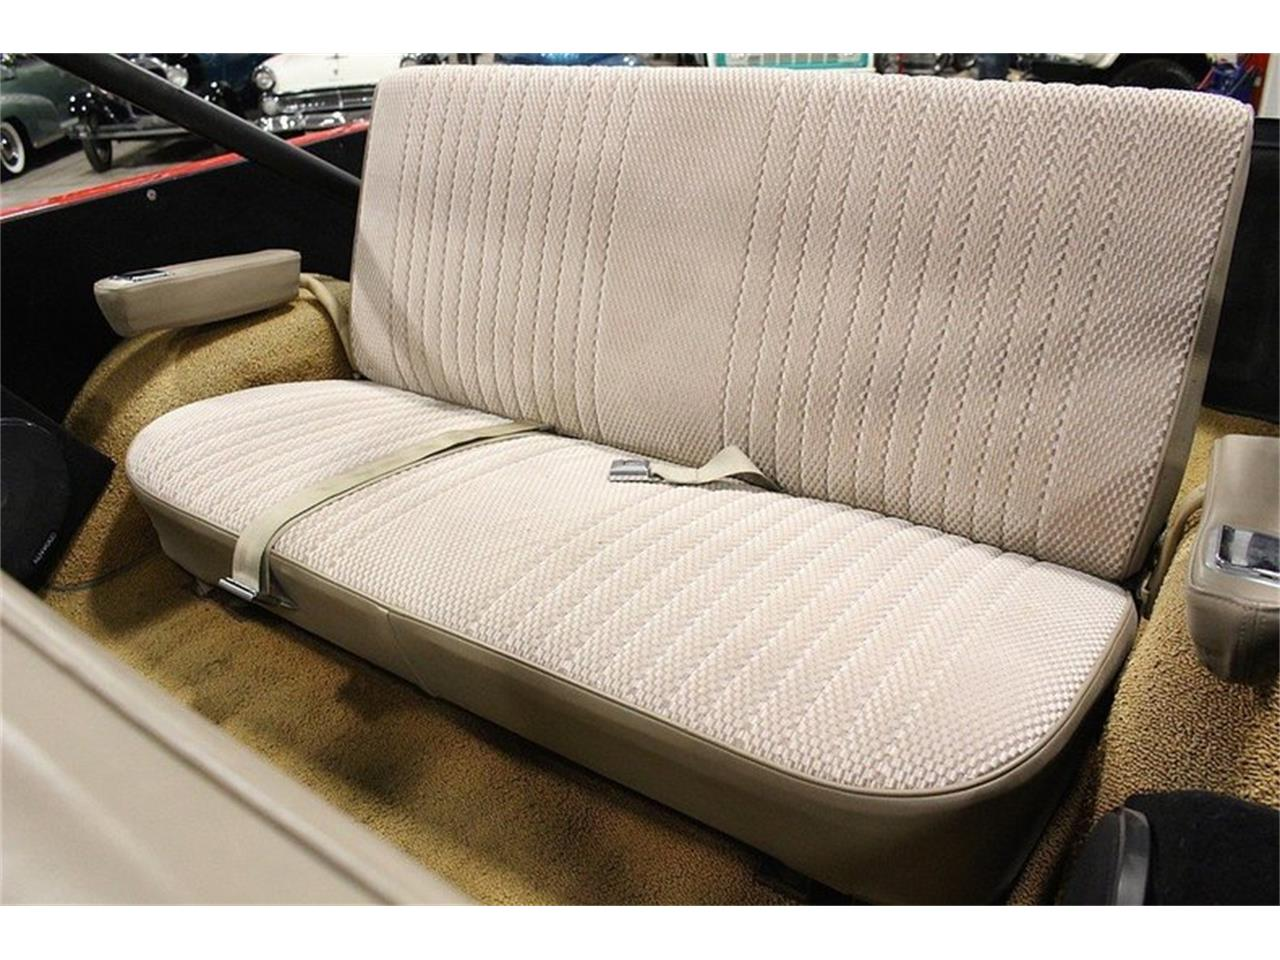 Large Picture of 1972 Chevrolet Blazer - $23,900.00 Offered by GR Auto Gallery - MO42